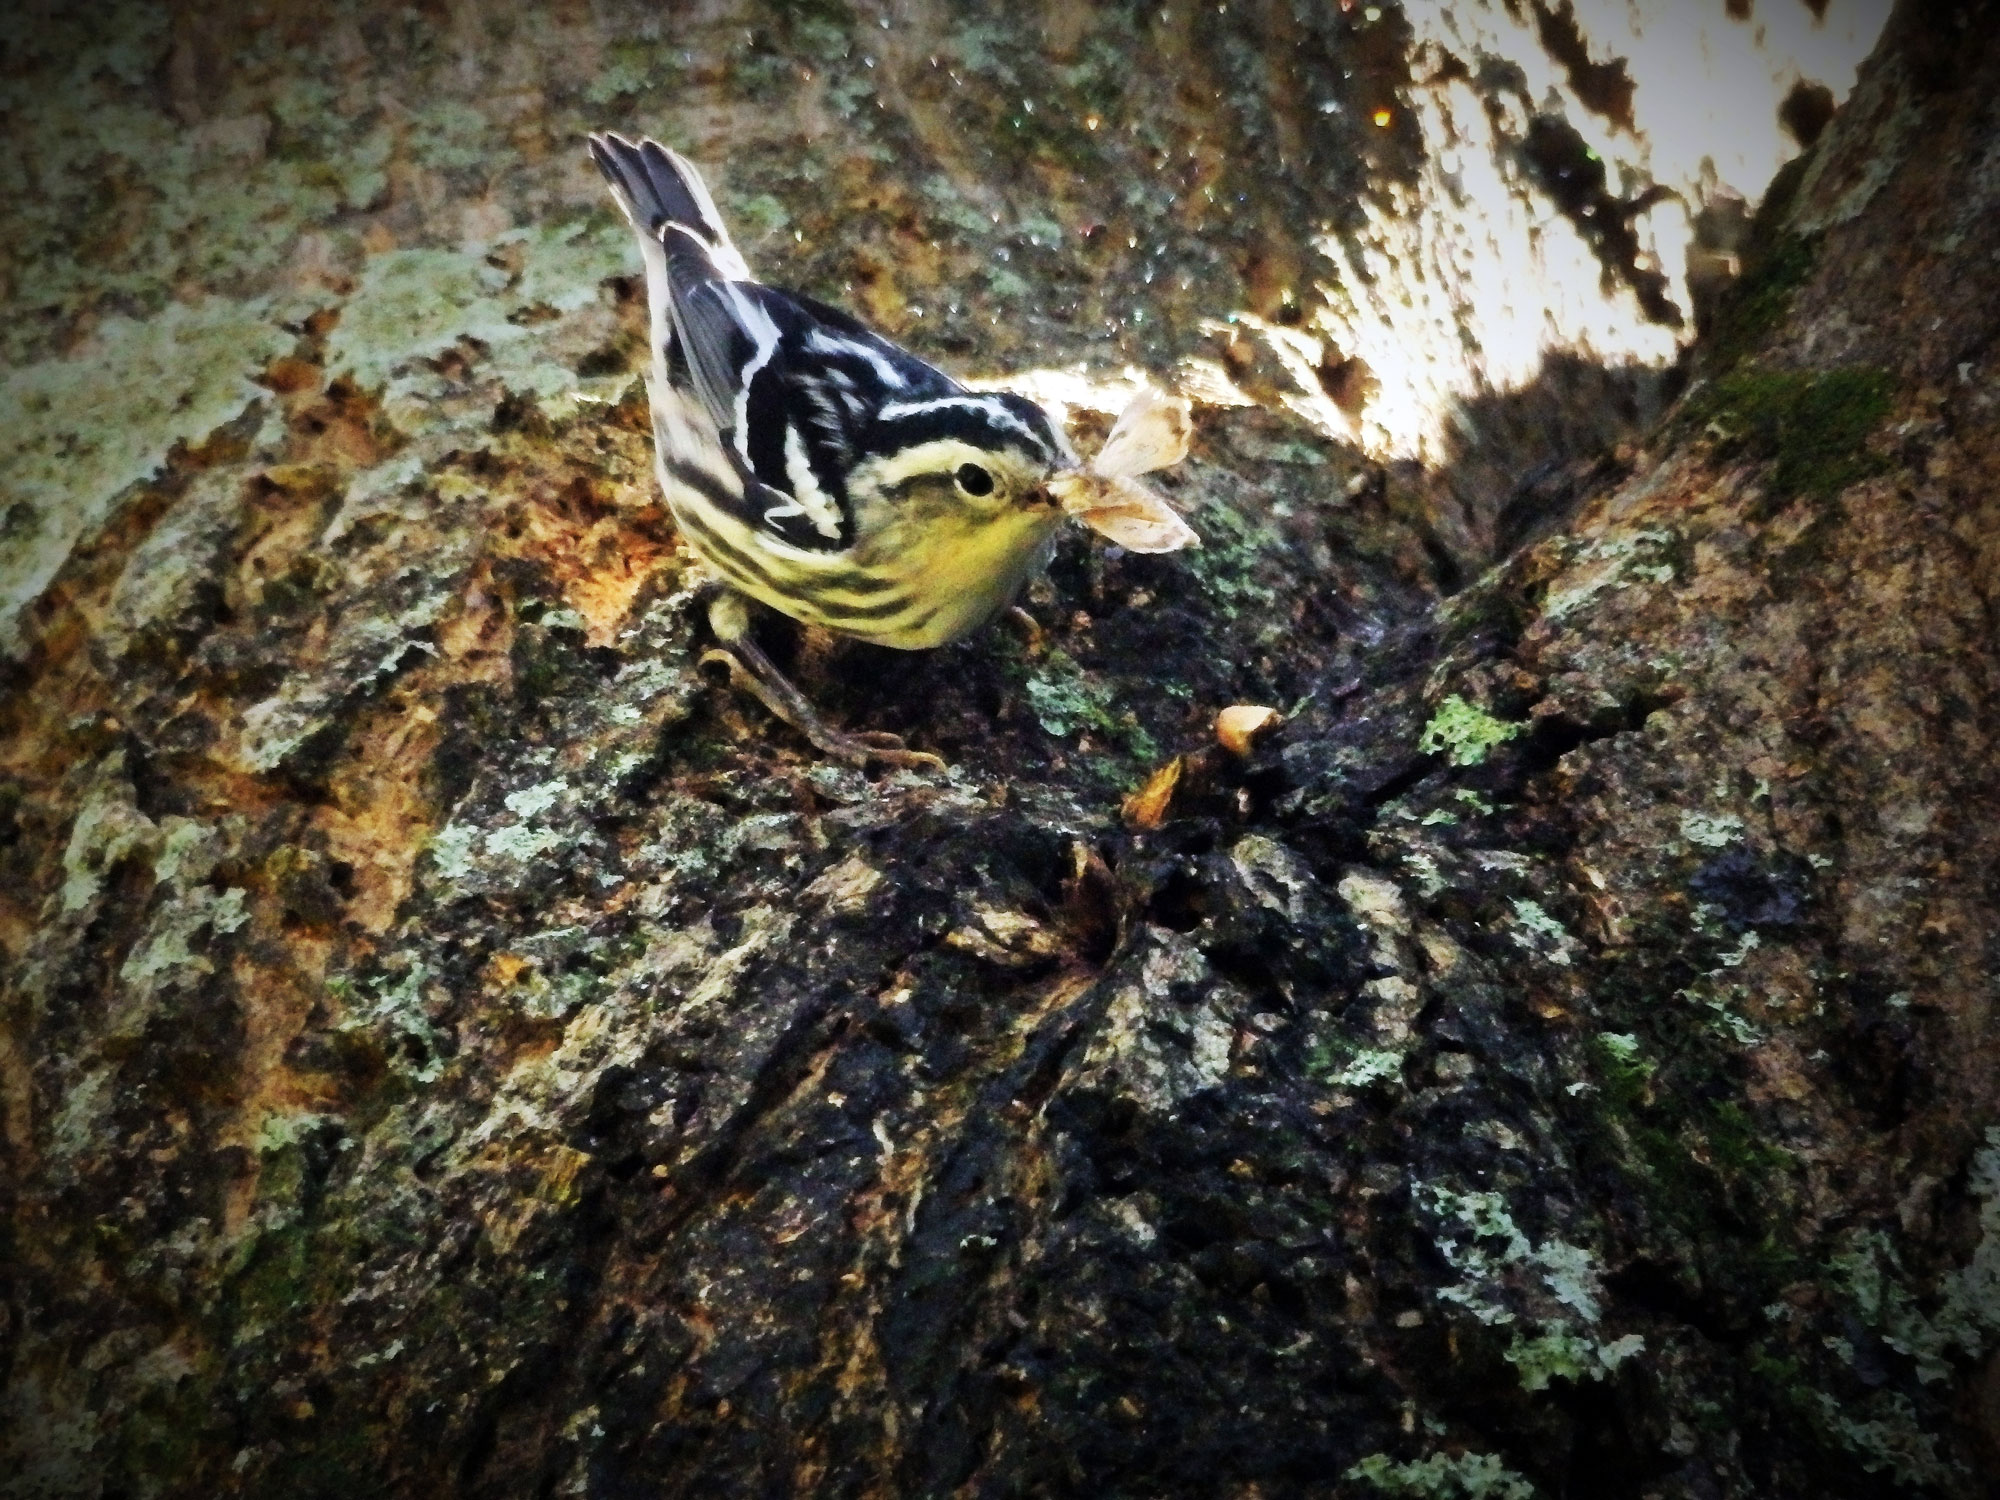 small black and white striped bird on tree trunk holding a moth in its beak